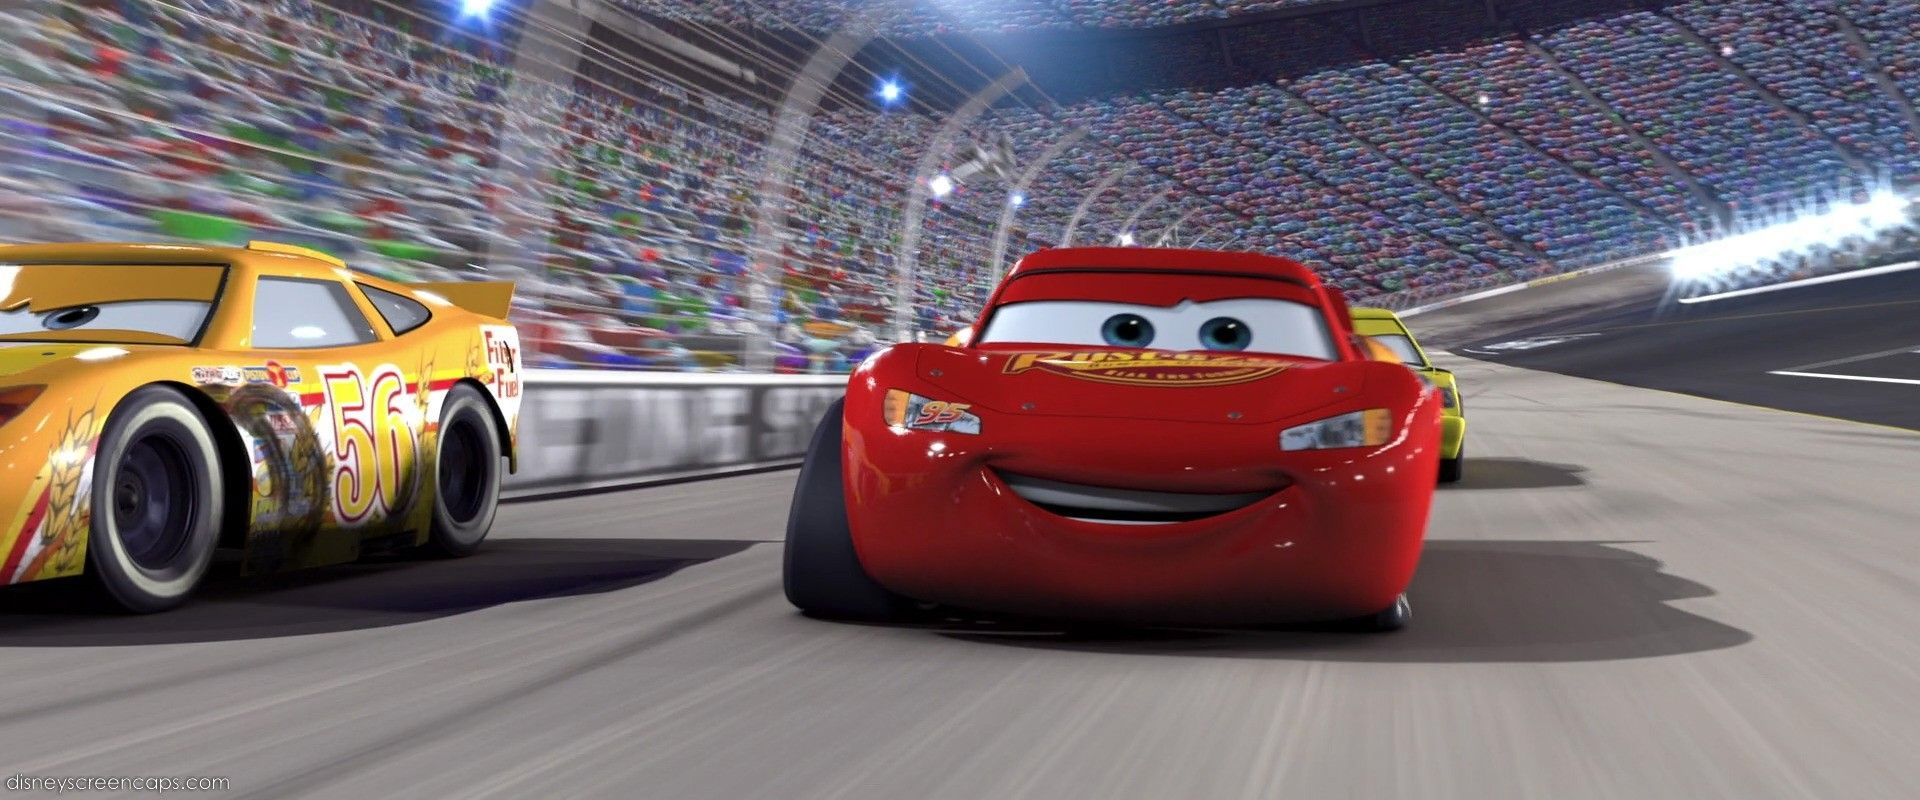 Lightning Mcqueen Photo Lightning Mcqueen Lightning Mcqueen Disney Cars Party Disney Cars